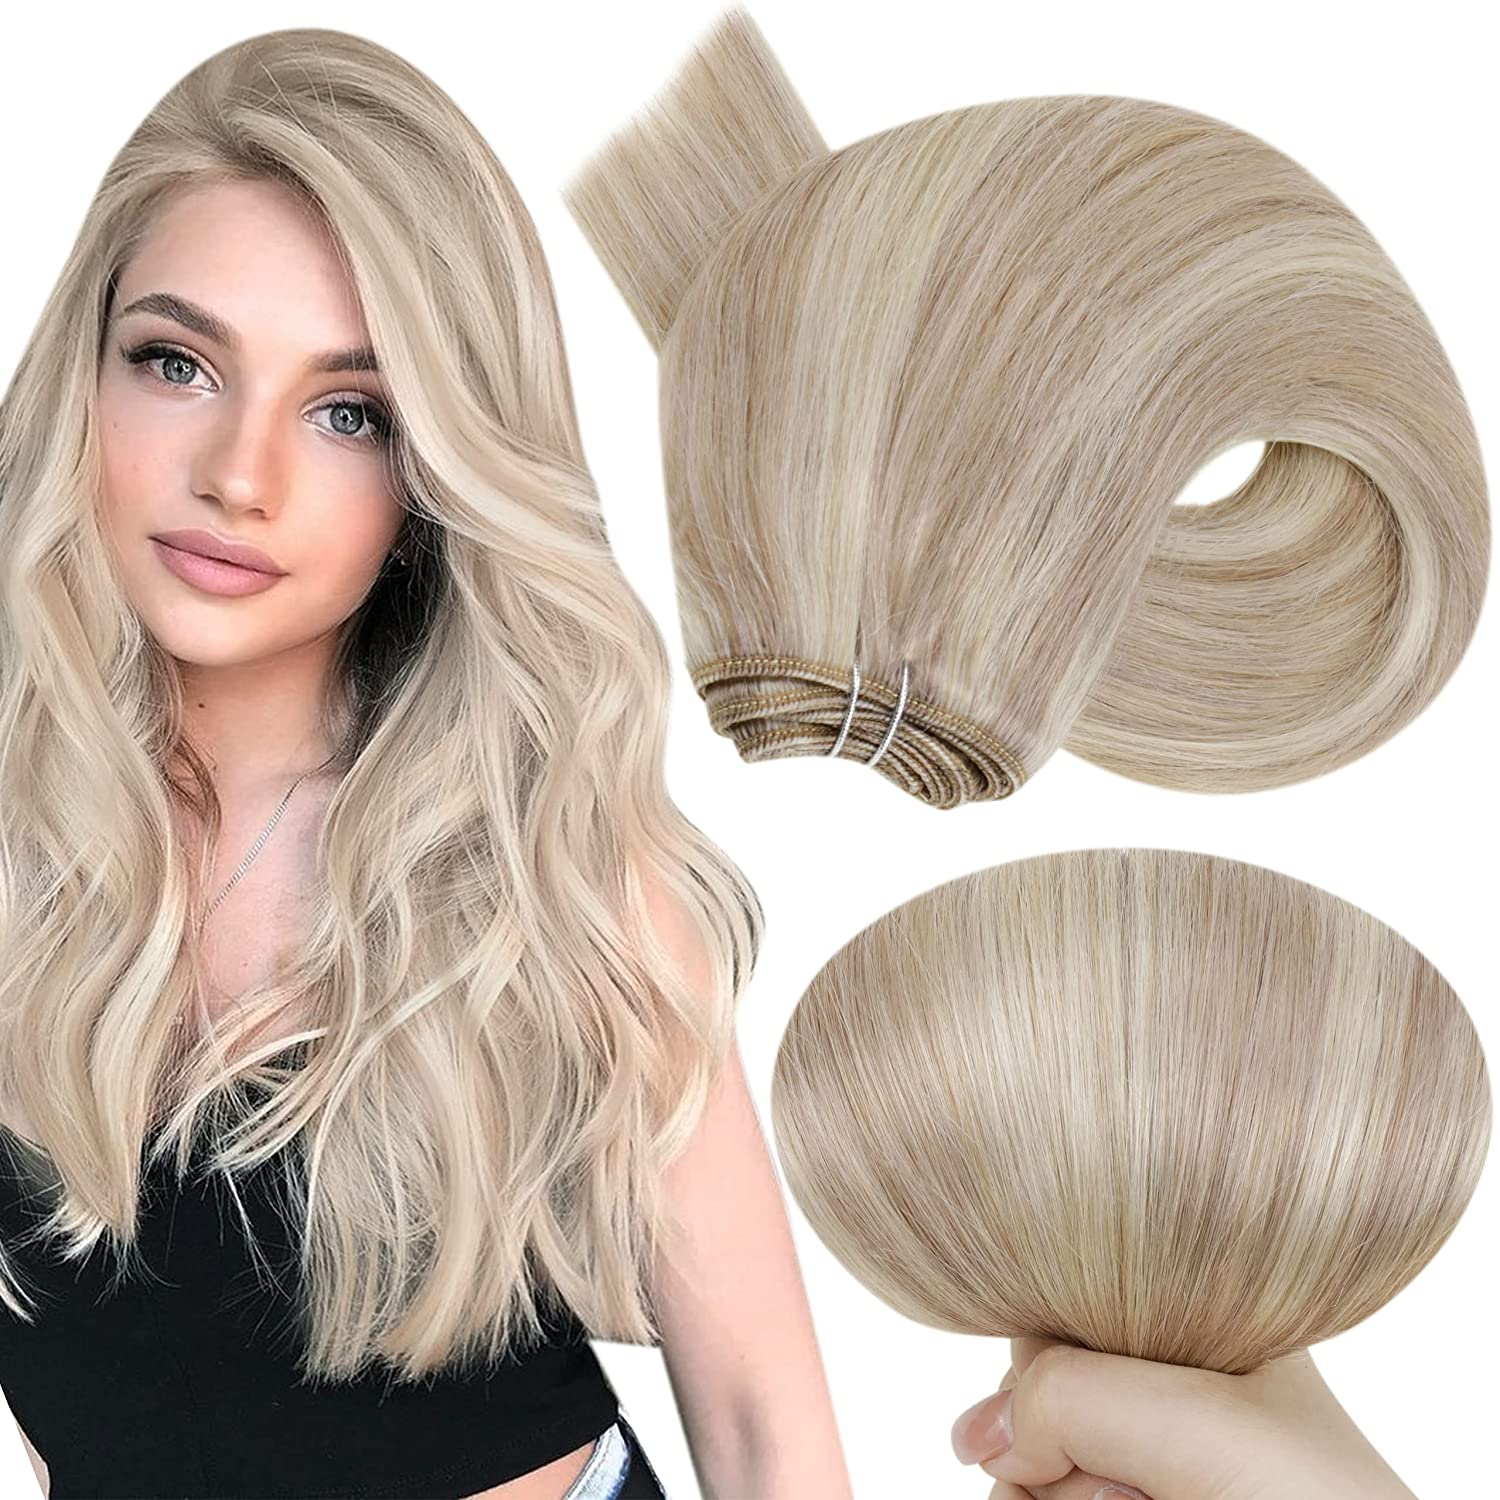 Cheap bargain Max 77% OFF Hetto Sew in Weft Hair Remy Human Extensions Inch 18